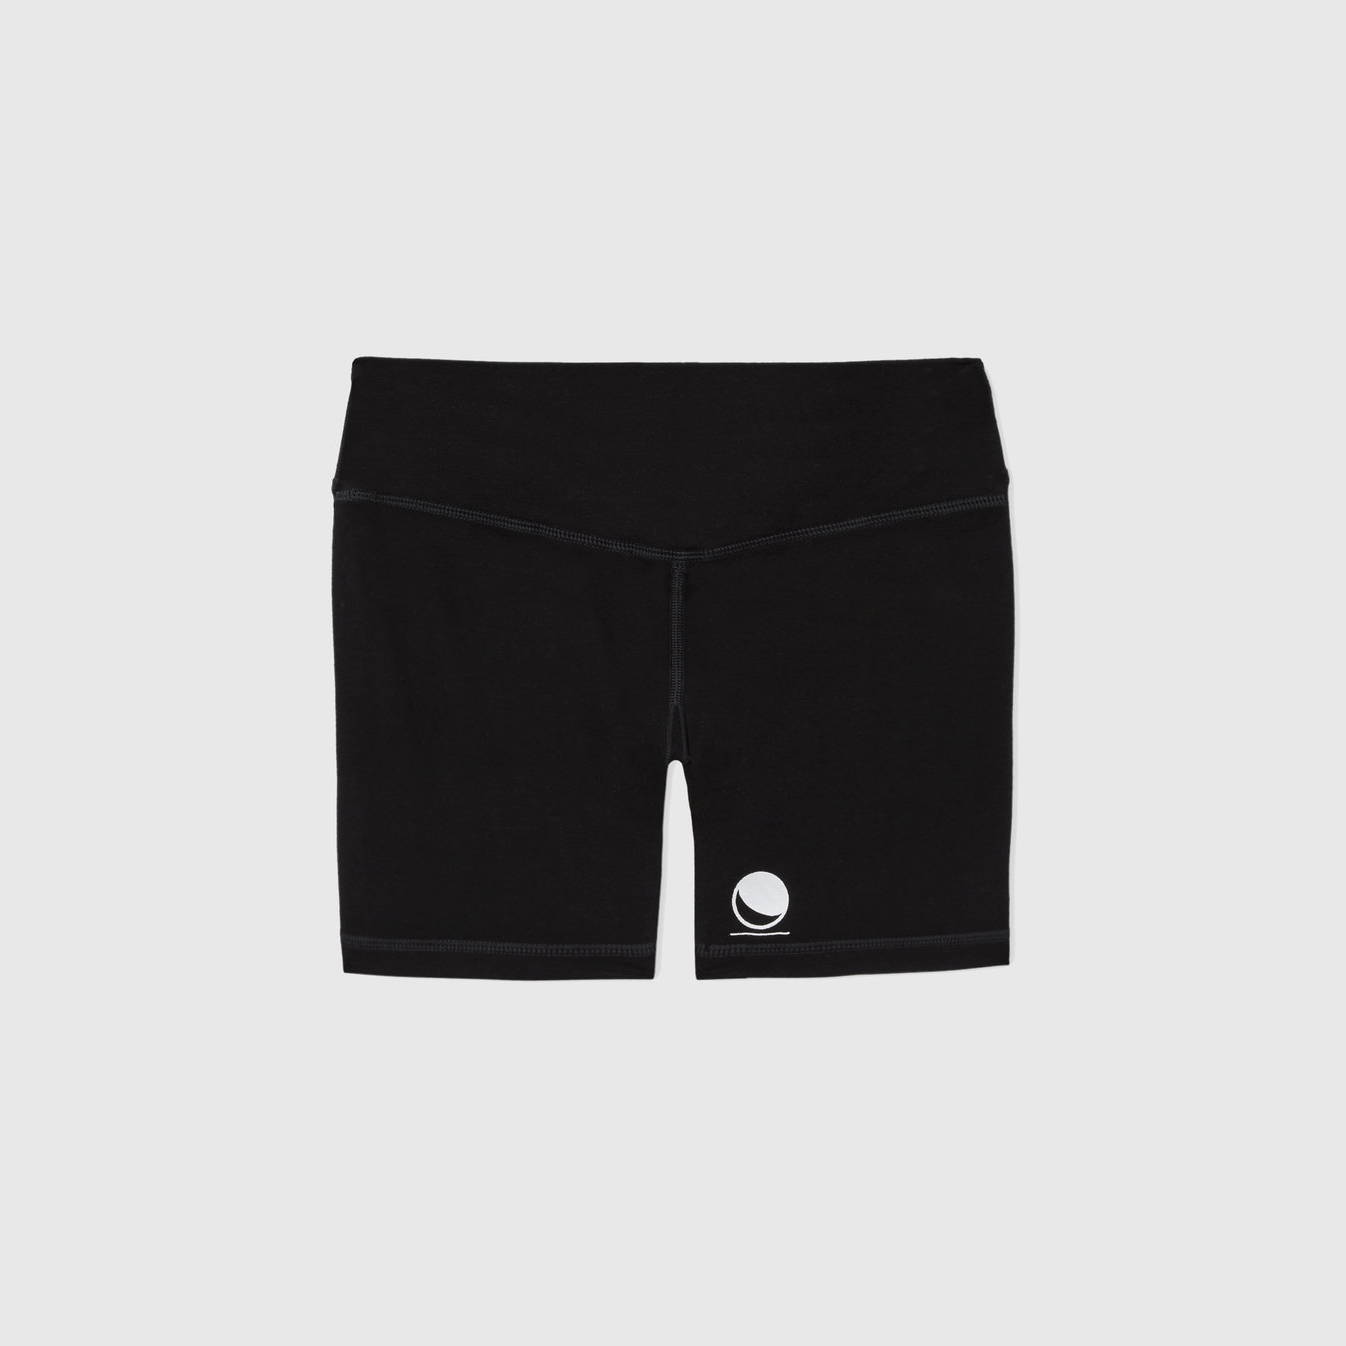 Miakoda Crescent Moon Shorts